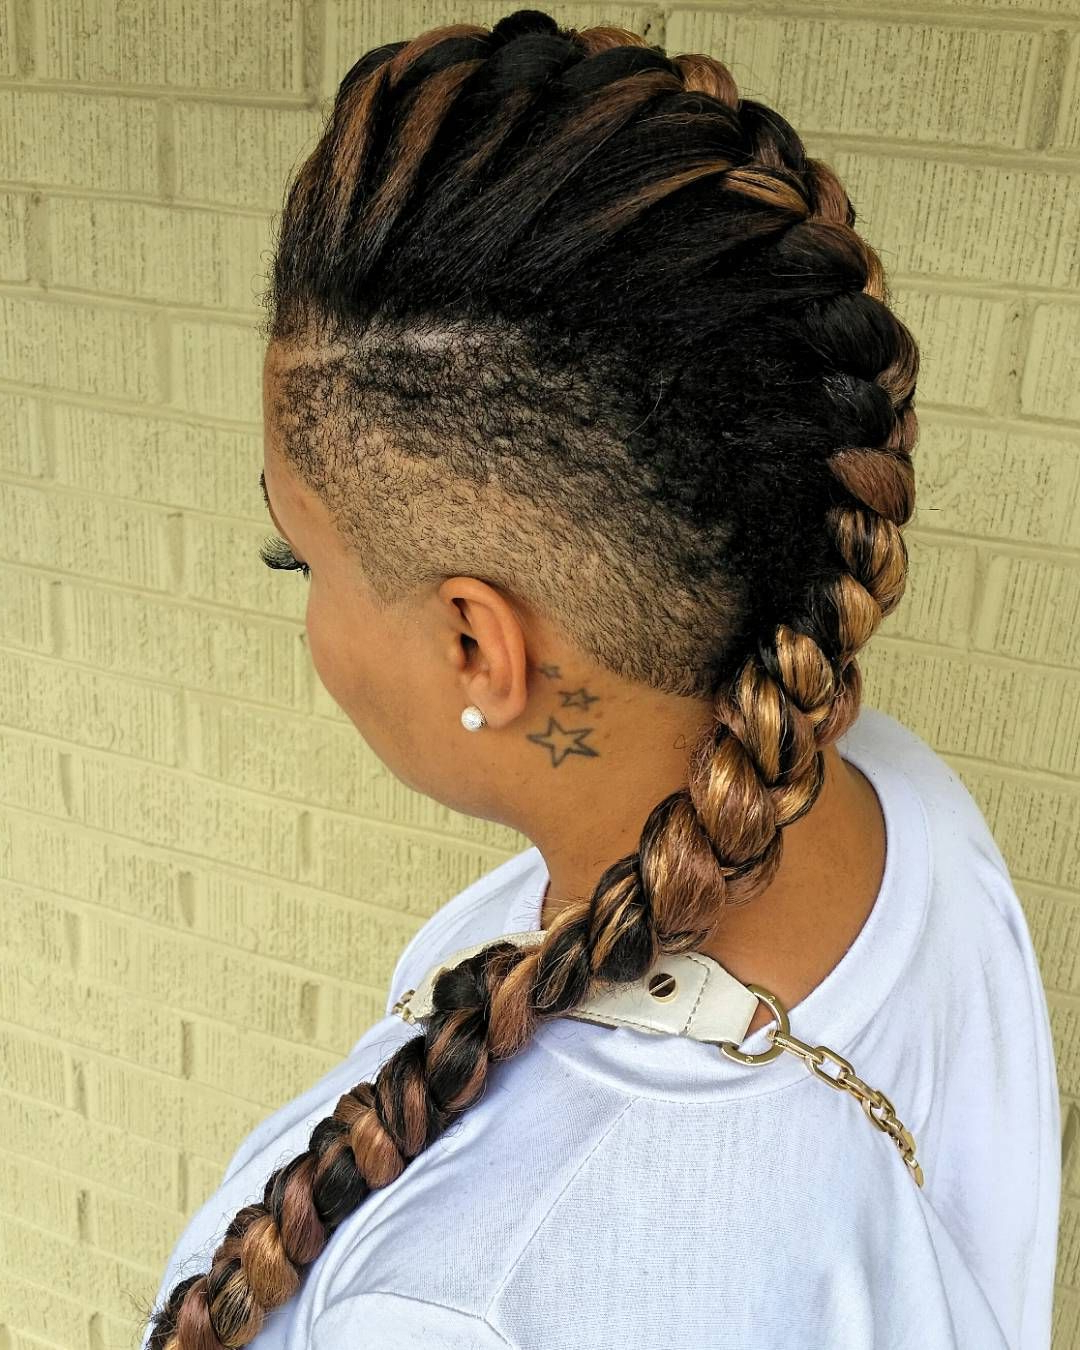 22 Goddess Braids Hairstyles: Includes Photos & Video Regarding Recent Medium Length Mohawk Hairstyles With Shaved Sides (View 6 of 20)